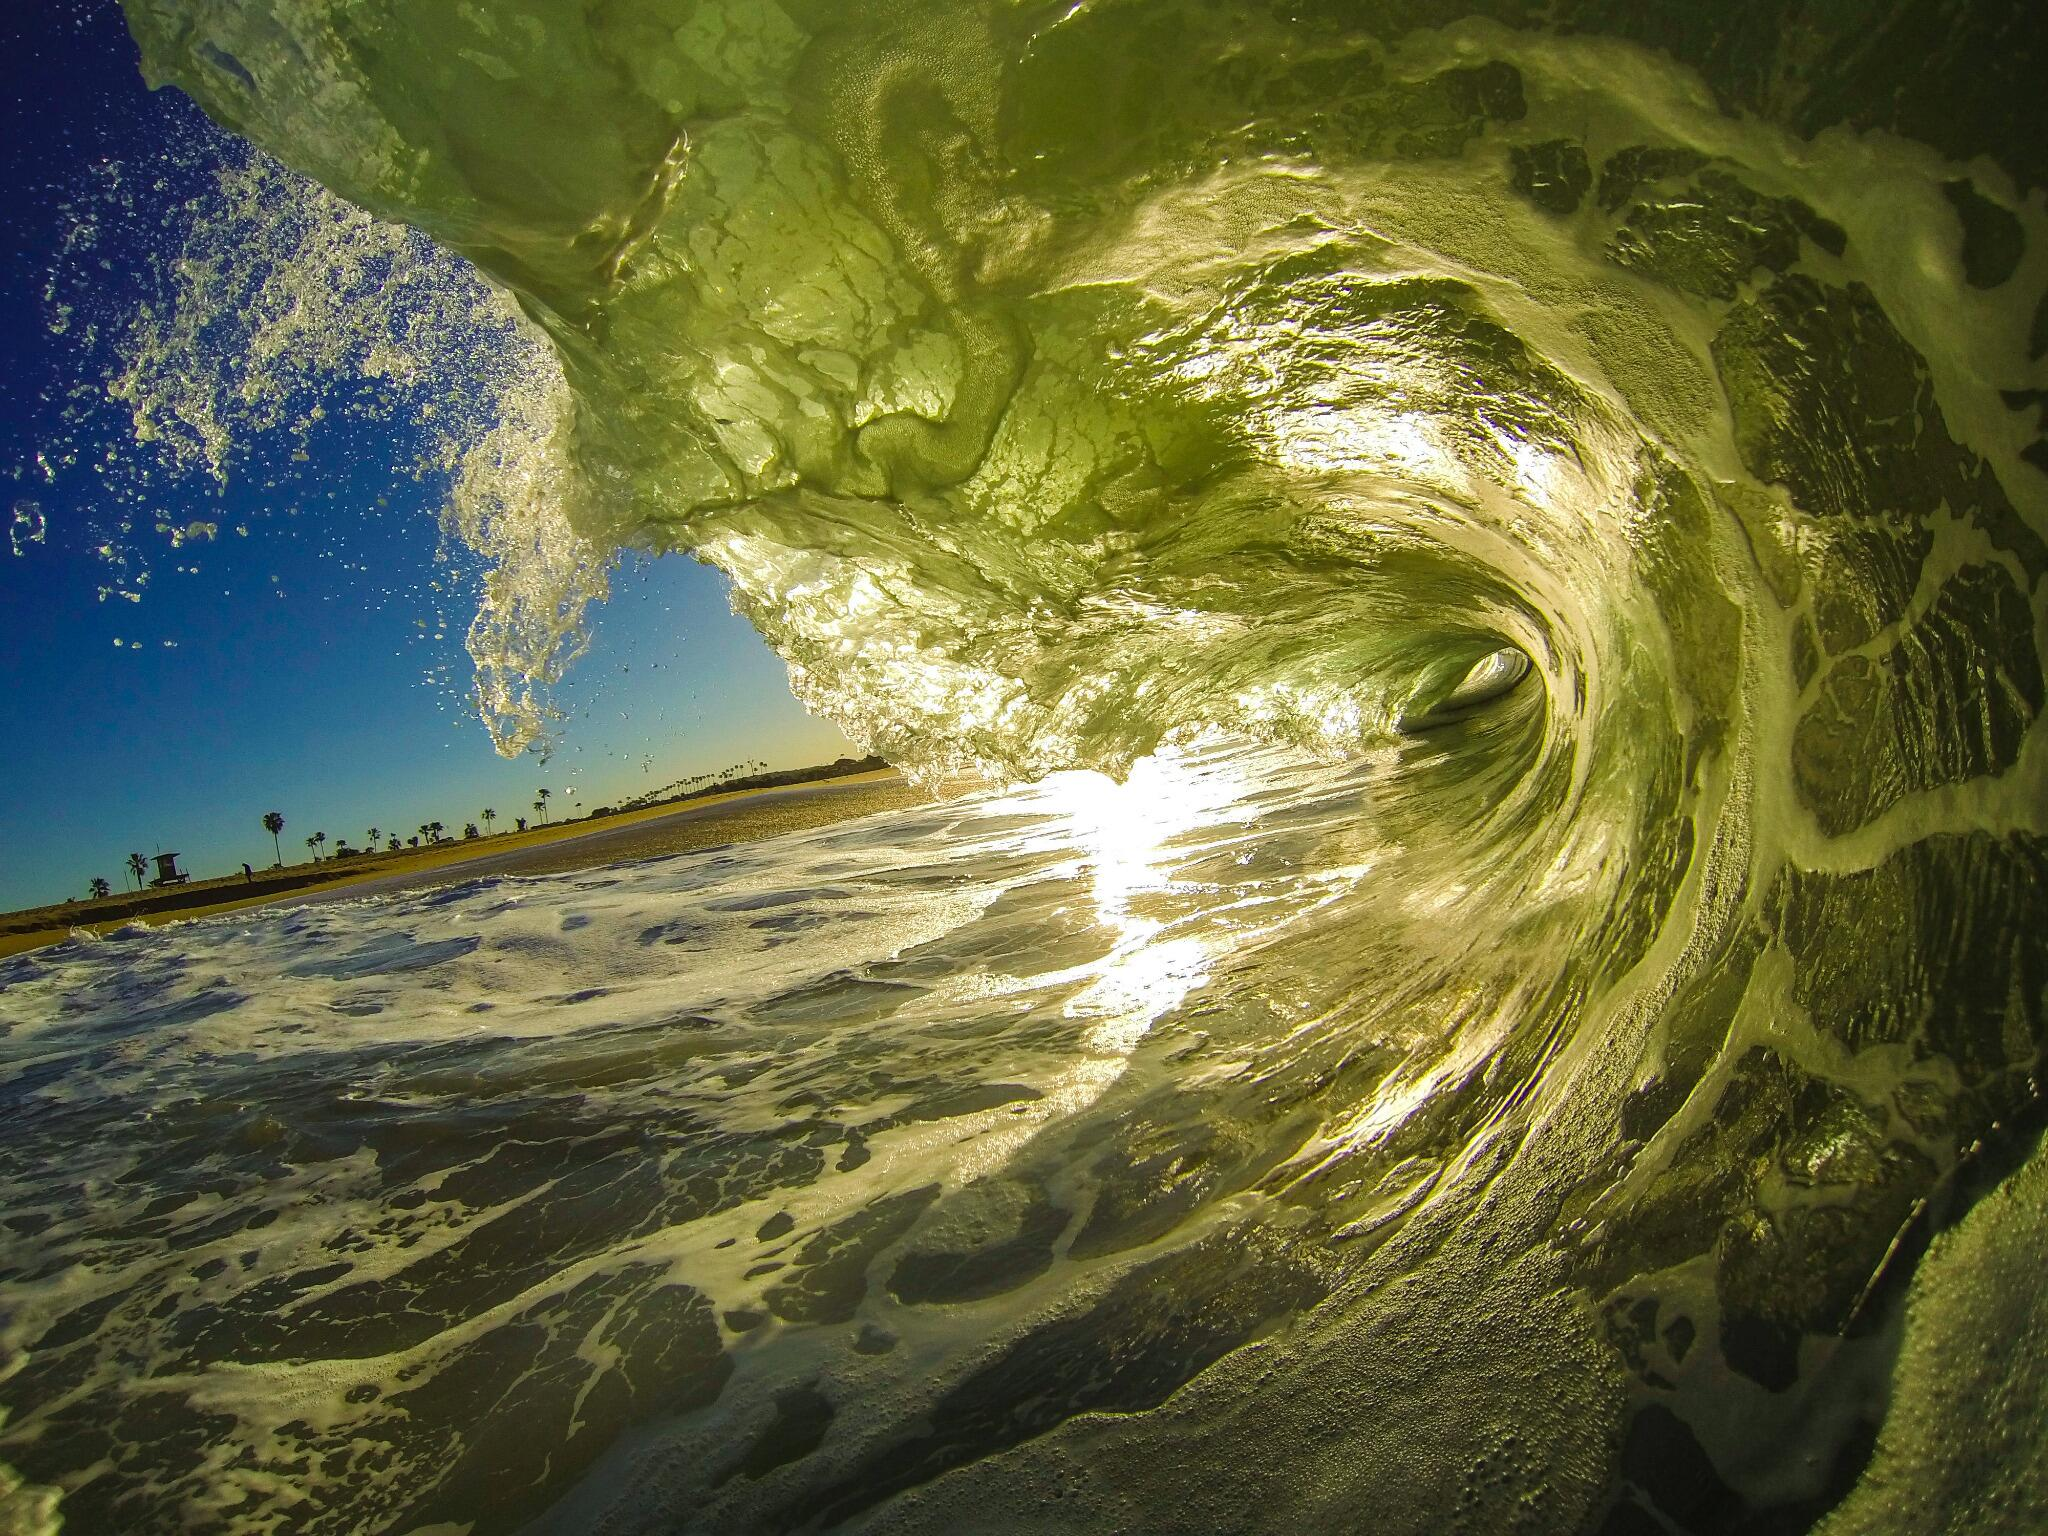 Photo of the Day! Sunrise at Newport Beach. Backlit wave shot by Kyle Redington. #GoPro #surf http://t.co/quQpltvTF2